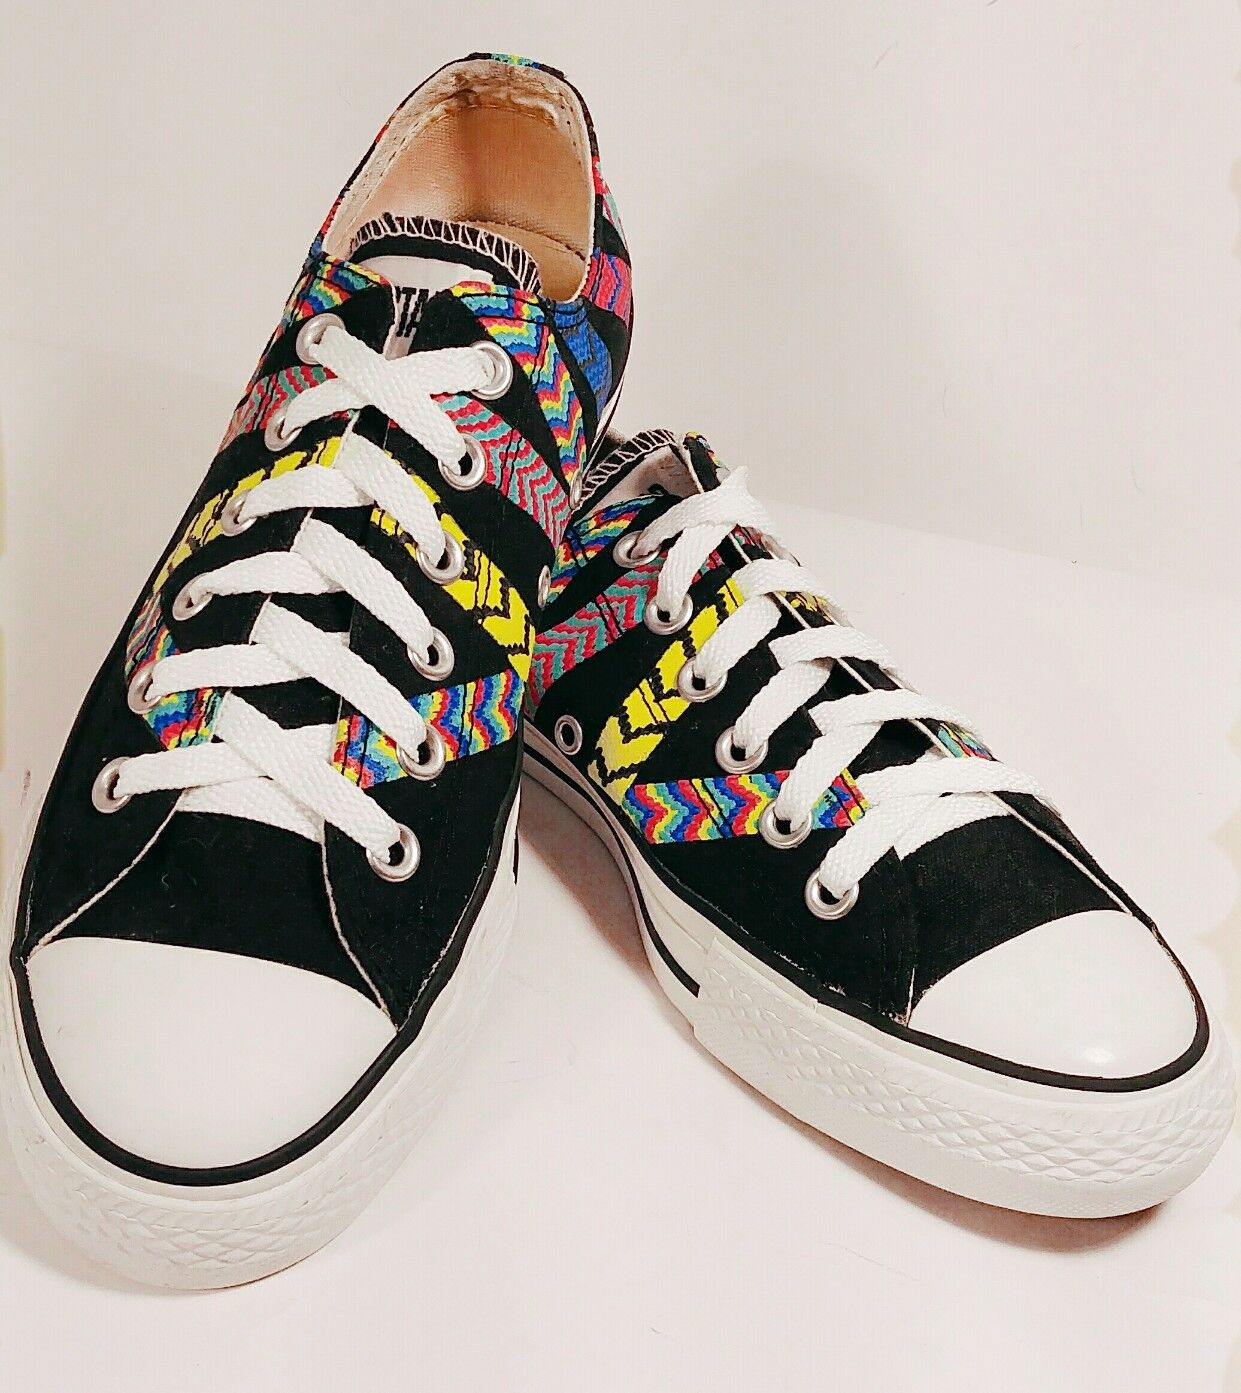 Converse All-Star Black Canvas Multi-colord Friendship Bracelet Lo-Top Size 8M